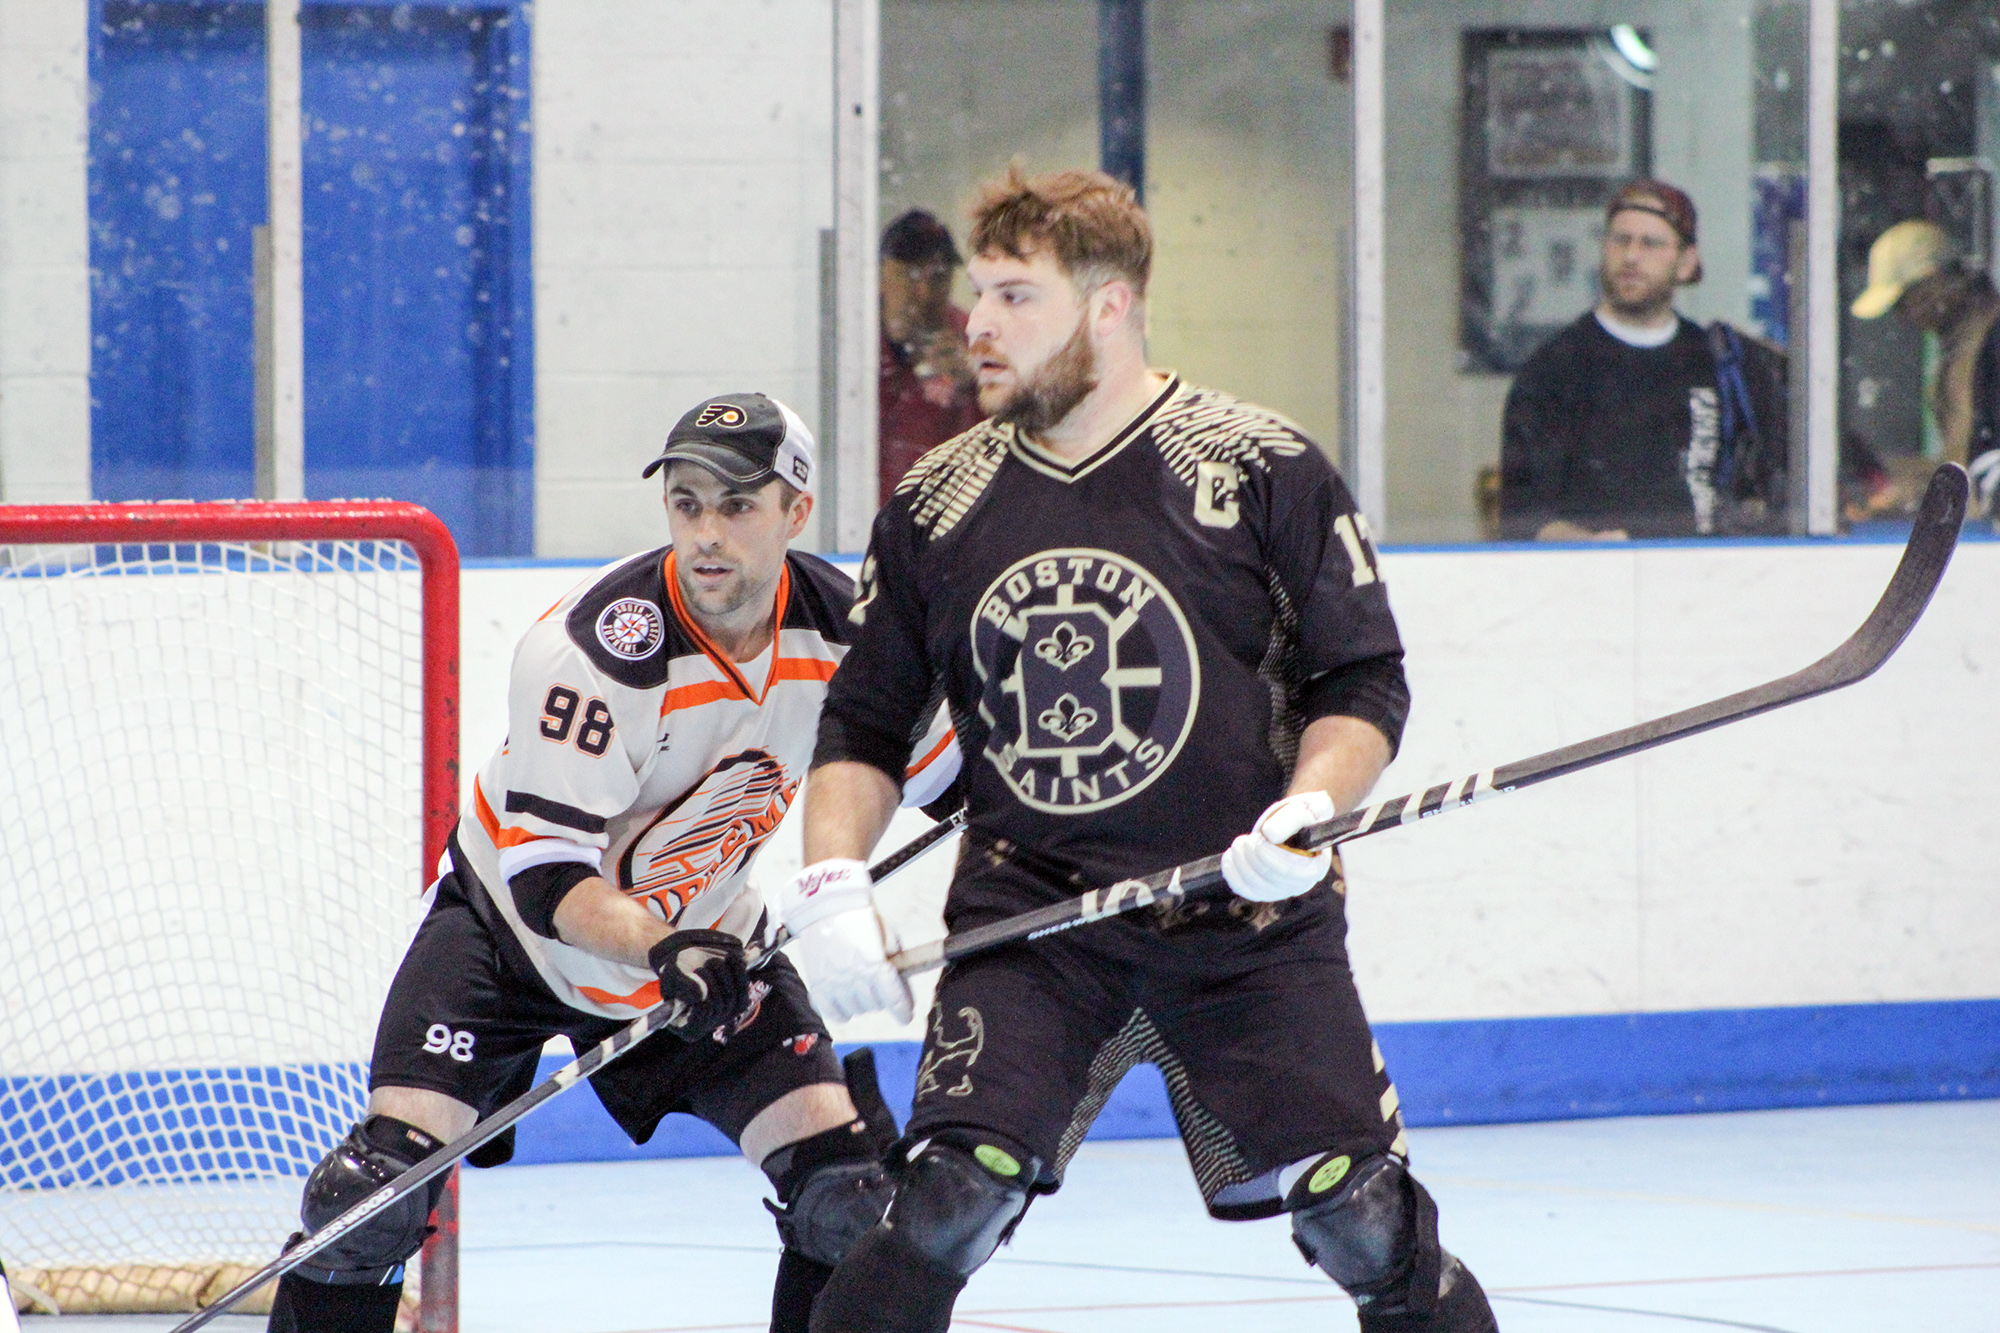 The Saints in action at the 2016 Cool Hockey North American Ball Hockey Championships in Philly (Pictures: Ricky T)